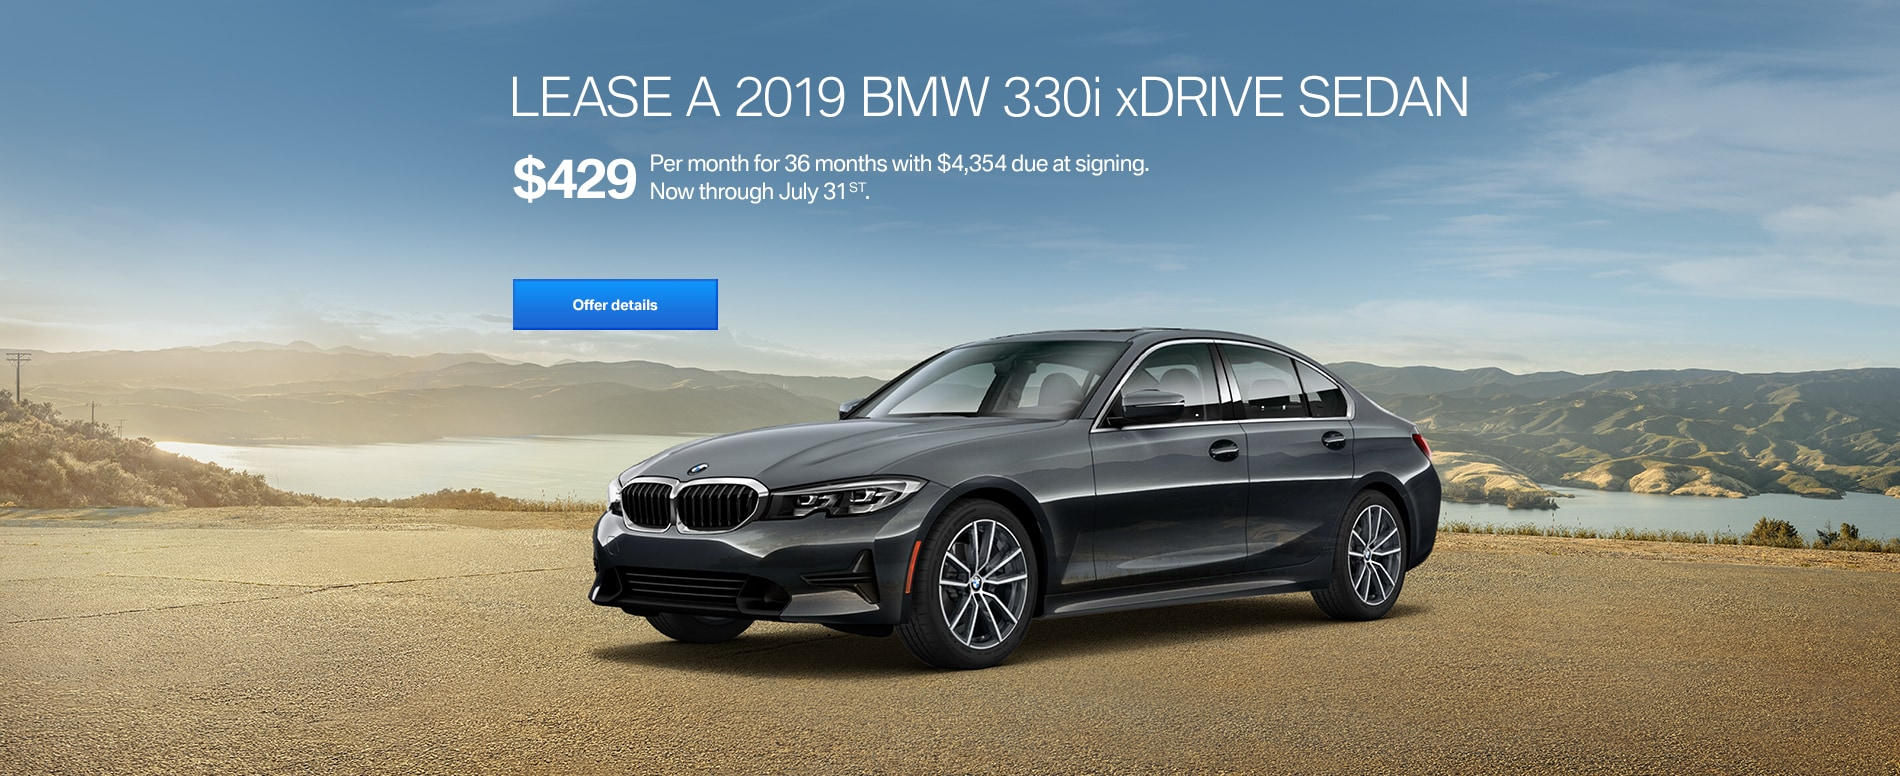 Bmw Mountain View Service >> Bmw Dealership In Wilkes Barre Pa Napleton Bmw Of Wyoming Valley